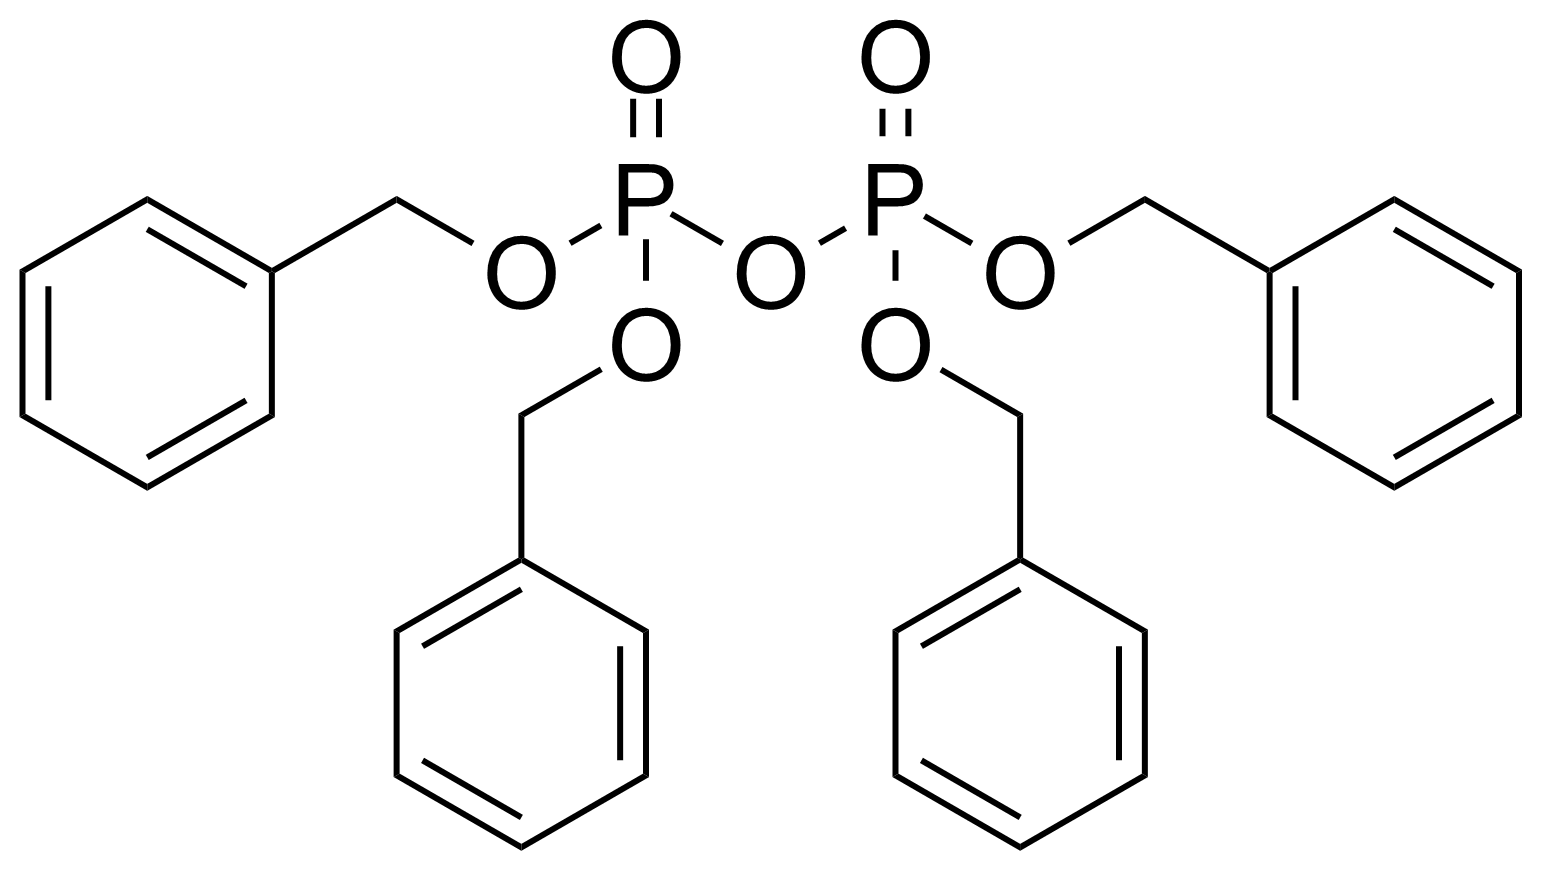 Structure of Tetrabenzyl pyrophosphate